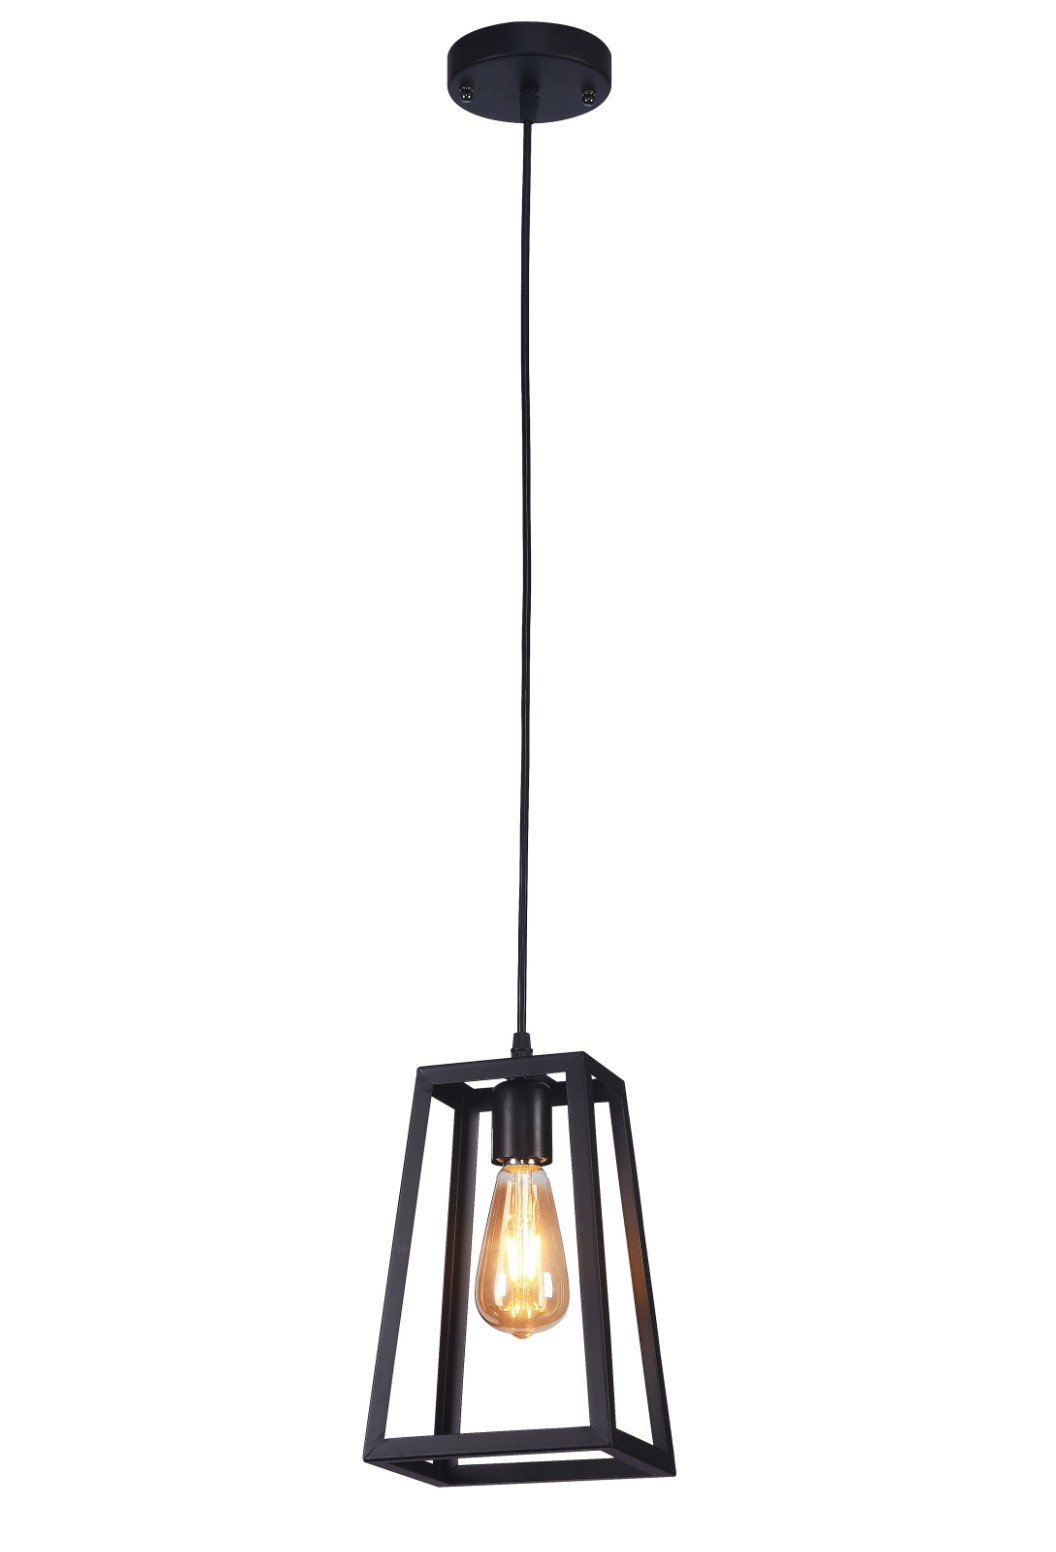 Cabott 1 Light Square/rectangle Pendant With Most Recent Nolan 1 Light Lantern Chandeliers (Gallery 19 of 20)